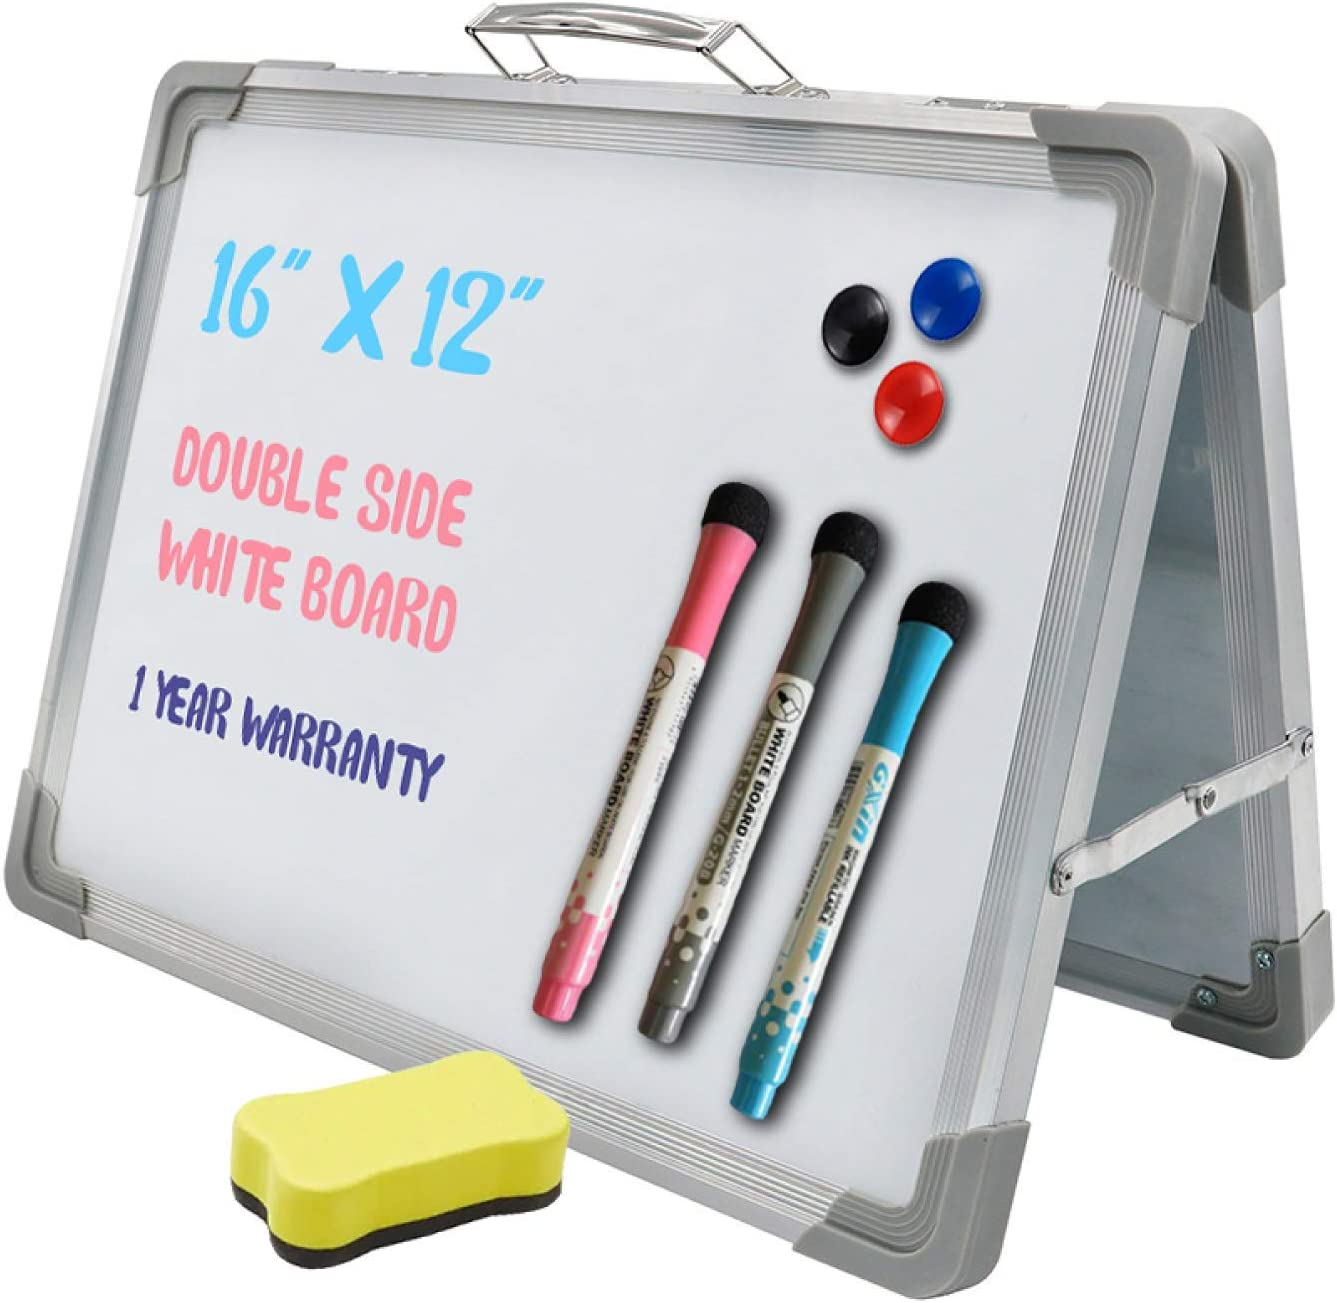 Small Dry Eraser White Board - 16 x 12 inches,Magnetic Doubleside Desktop Foldable Whiteboard Easel. Includes 3 Magnets, 3 Markers and Eraser by BestCircle